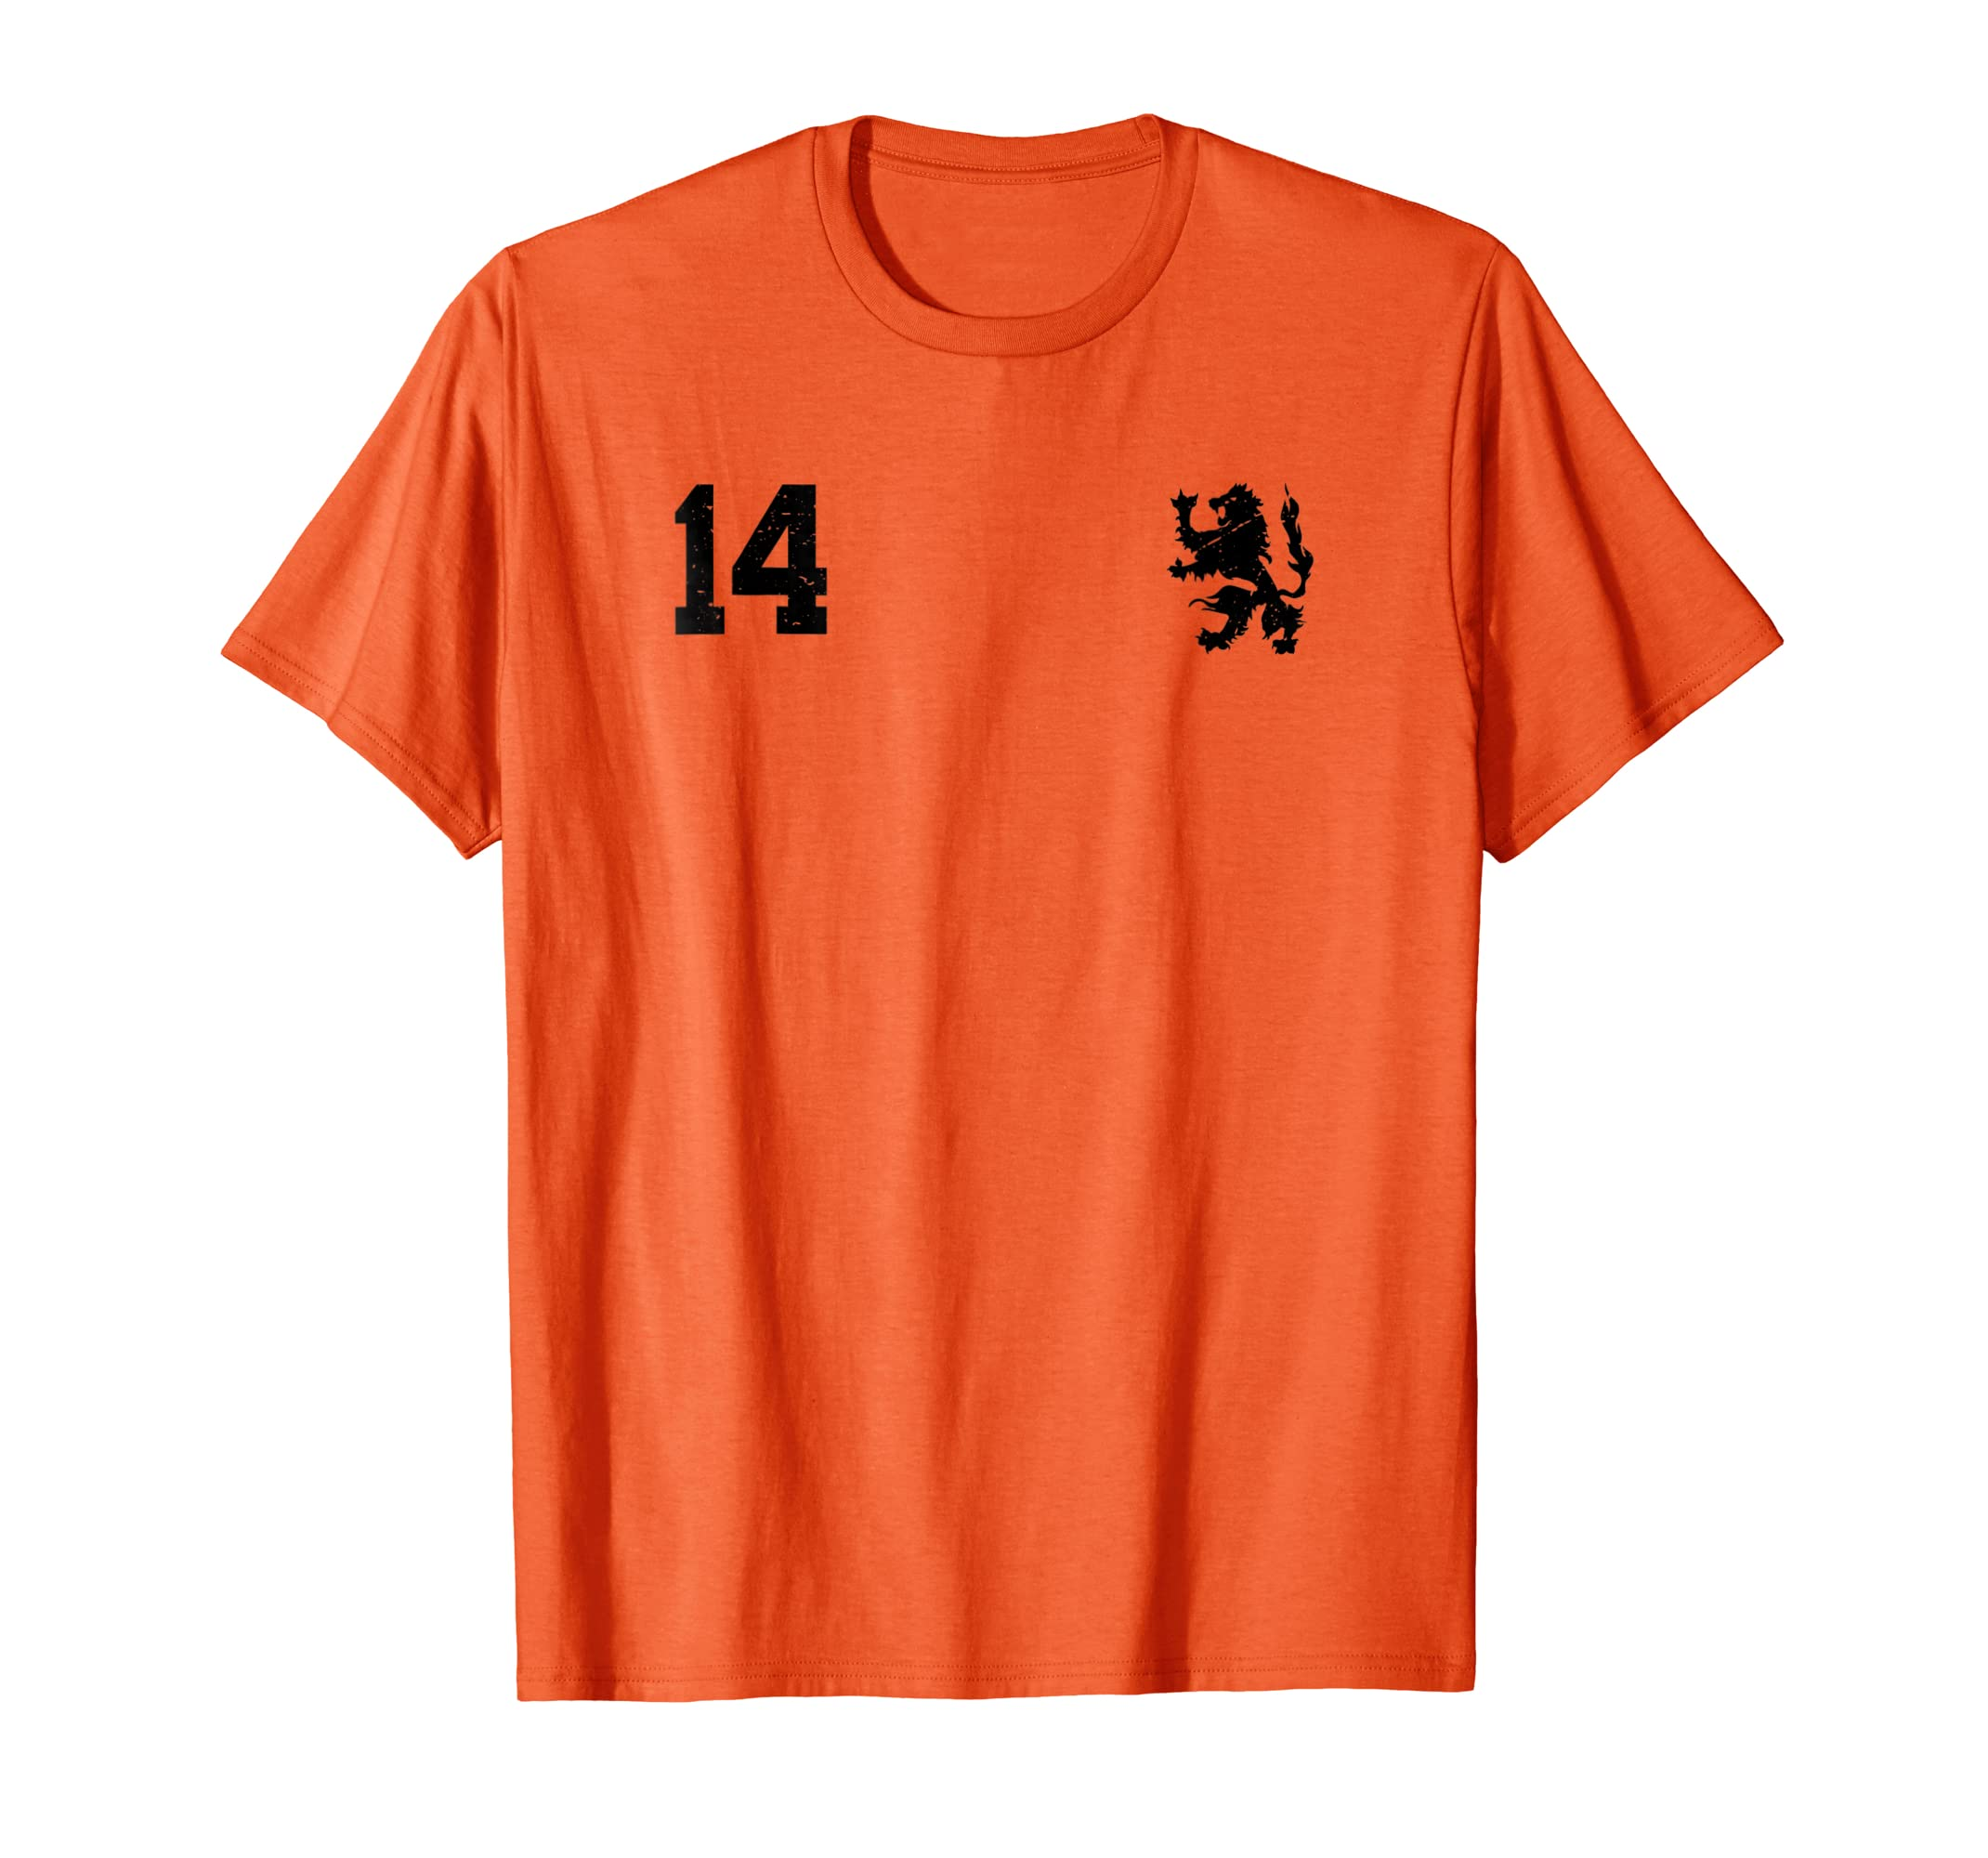 f6f7badae Classic Holland Football Shirt - DREAMWORKS